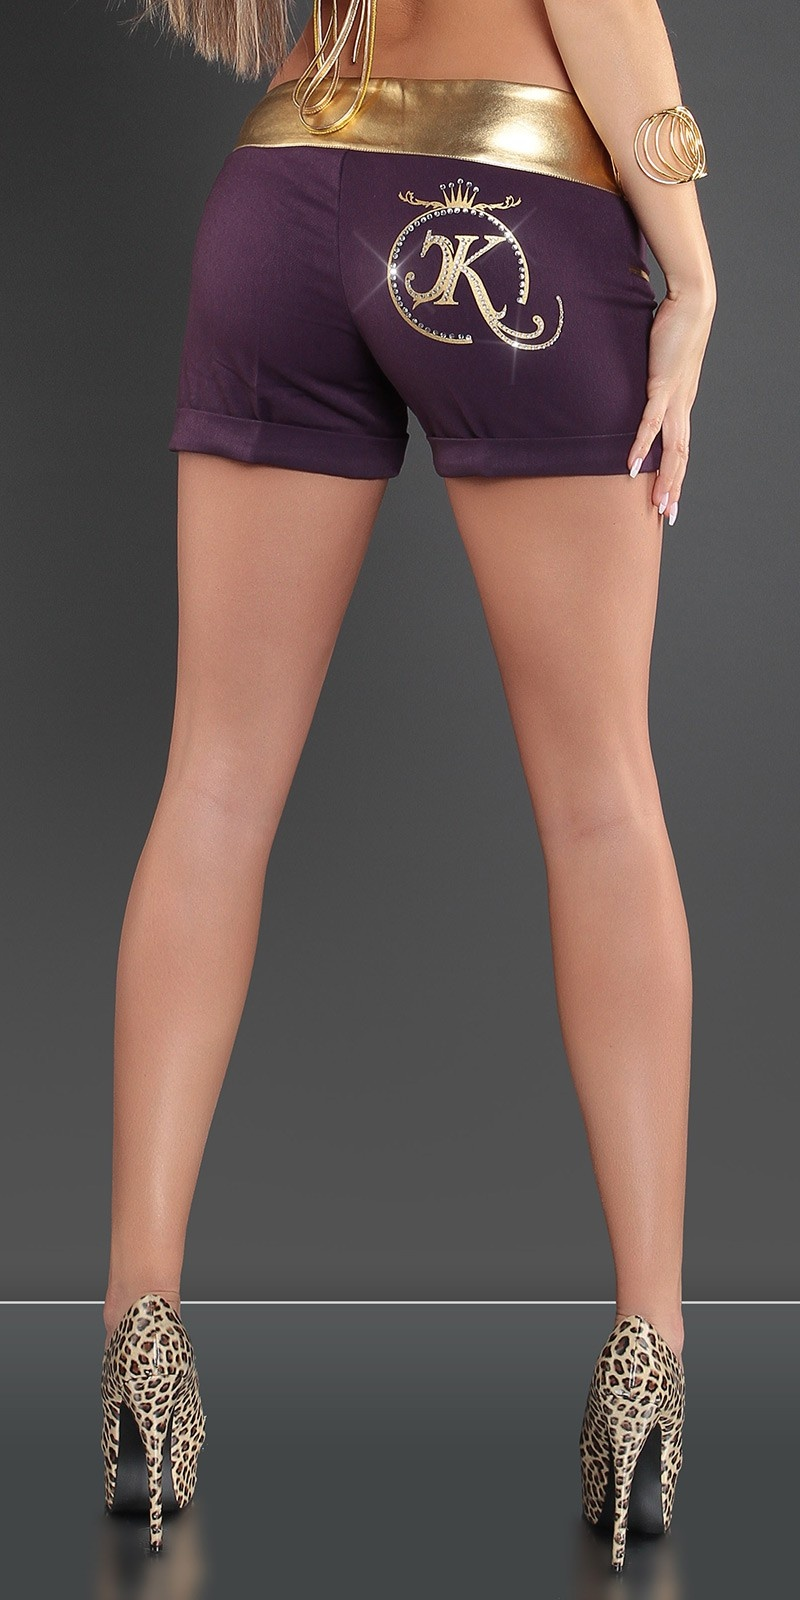 Sexy shorts met gouden tailleband paars